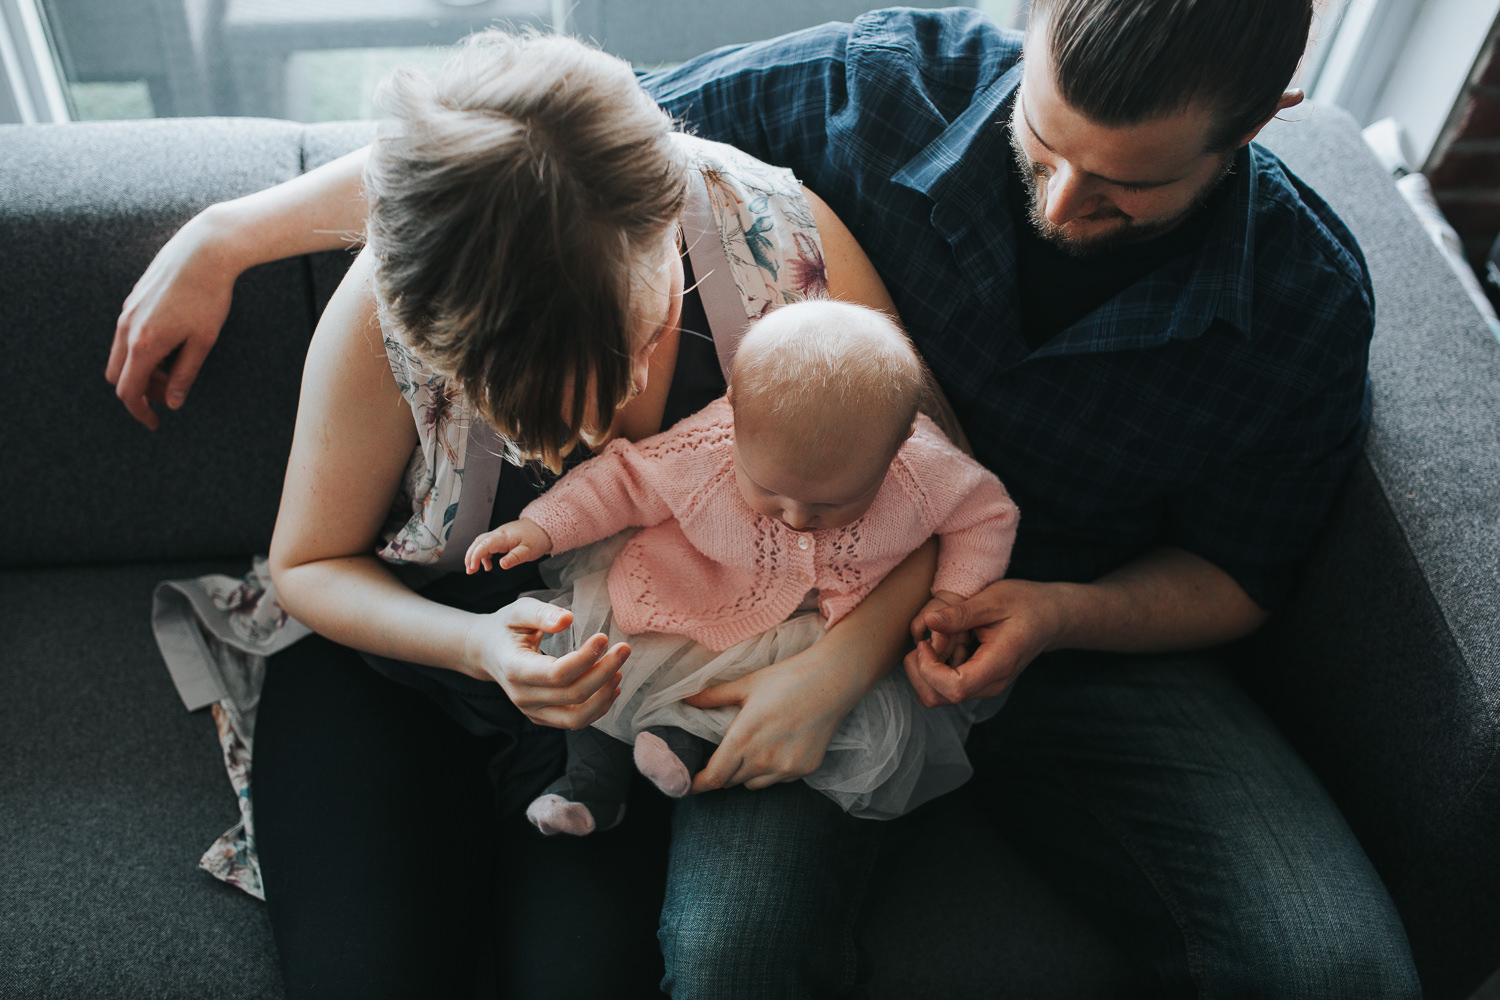 family of 3 sitting on couch,  5 month old baby girl sitting on mom's lap - Stouffville lifestyle photos